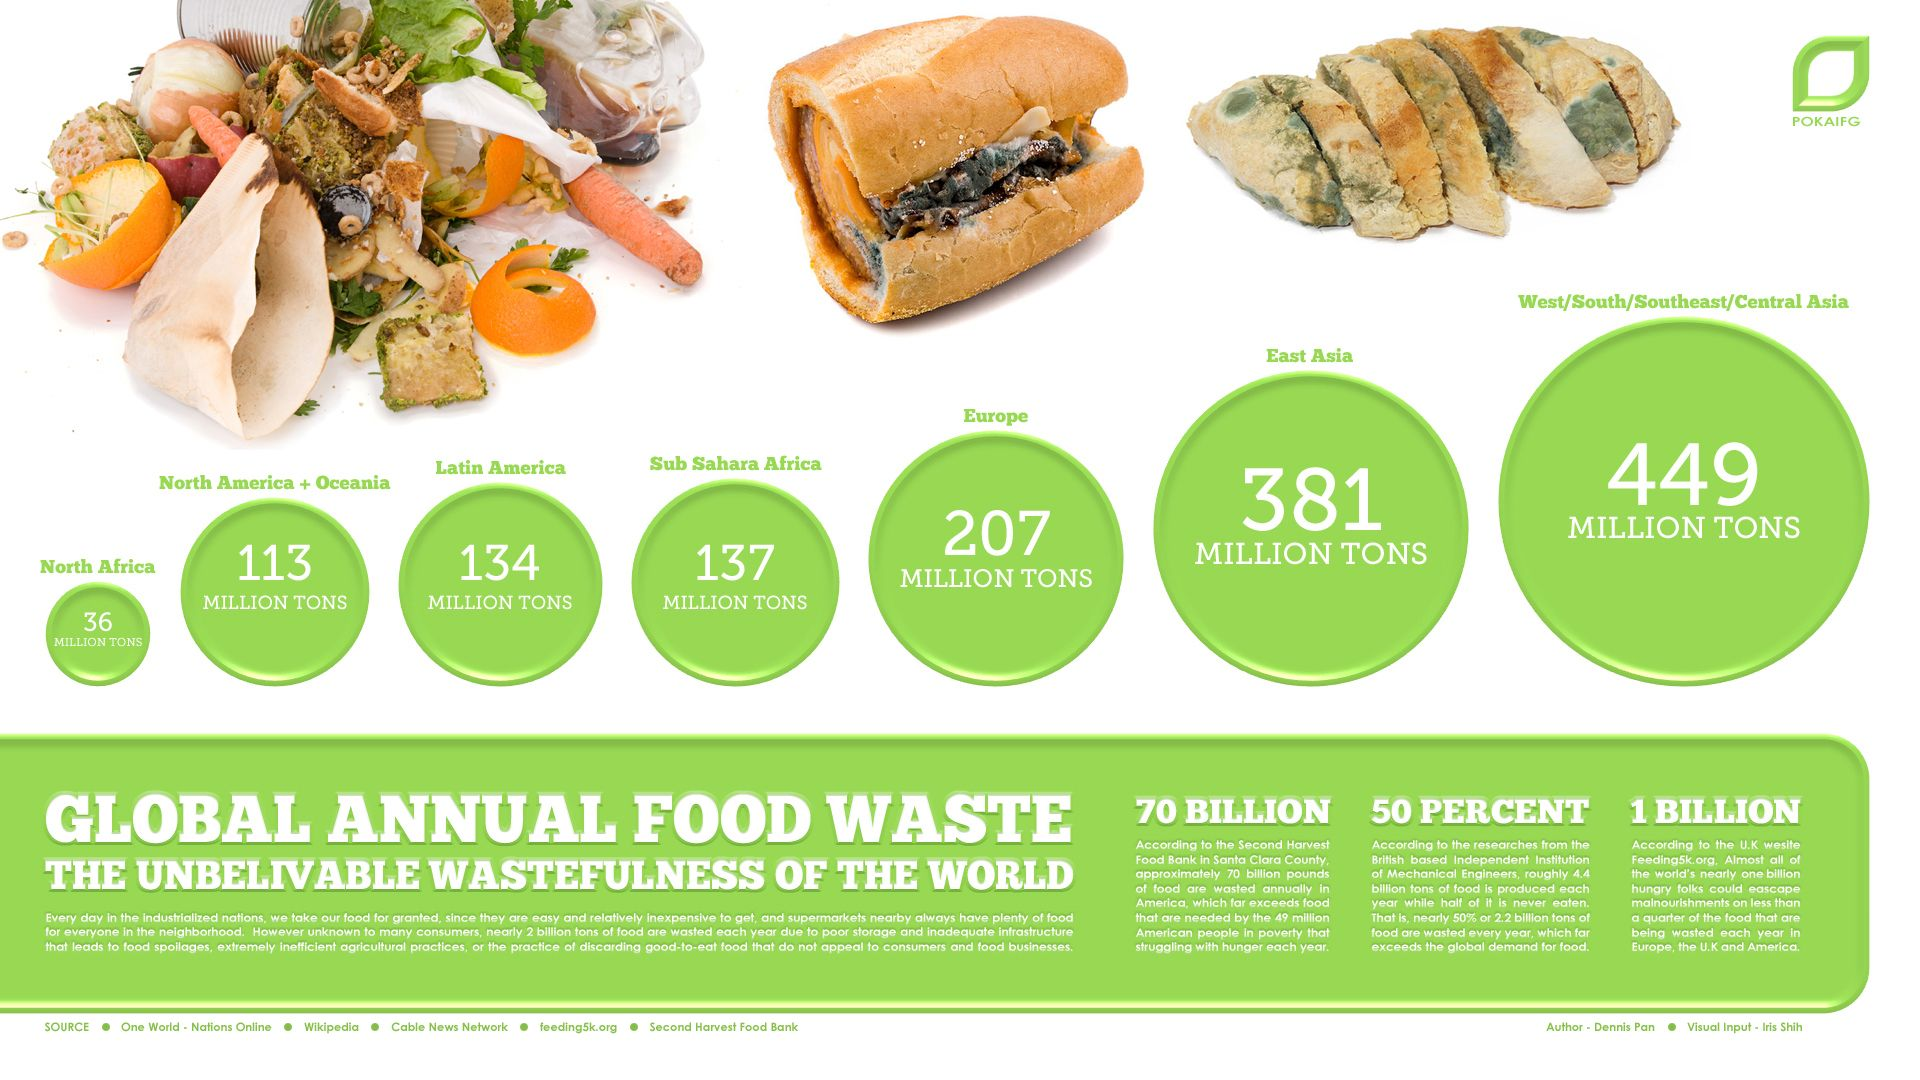 wasting food is wasting the planet Food waste facts we are over 7 billion people on this planet, of which 925 million are starving yet we annually lose and waste 1,3 billion tons of food – or enough to feed 3 billion people.